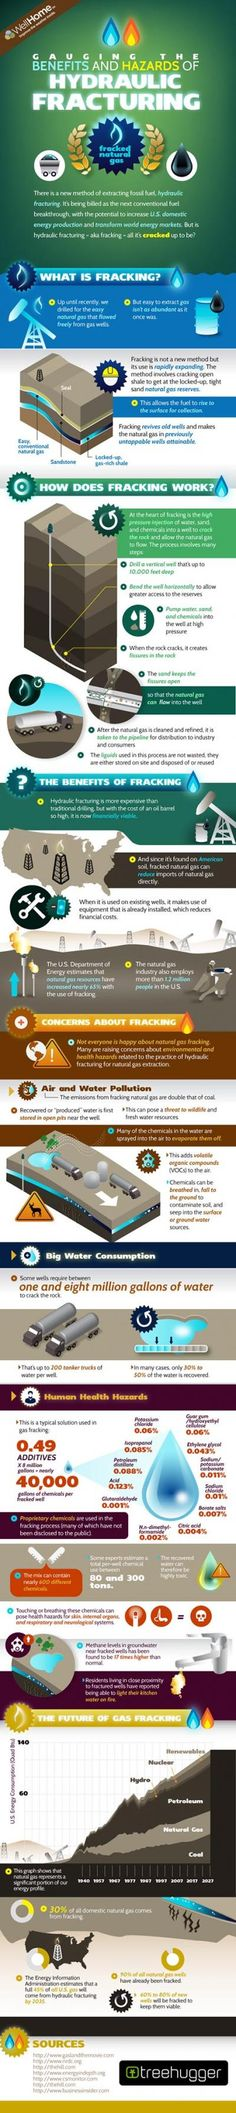 The Benefits and Hazards of Hydraulic Fracturing Infographic: This infographic by treehugger.com examins both the pros and the cons of fracking for natural gas. From how fracking works and it's benefits to the water conservation and human health hazards that can possibly come with it, this infographic give you all the information necessary to form your own opinion. http://www.sustainableplant.com/2013/04/infographic-gauging-the-facts-on-fracking/